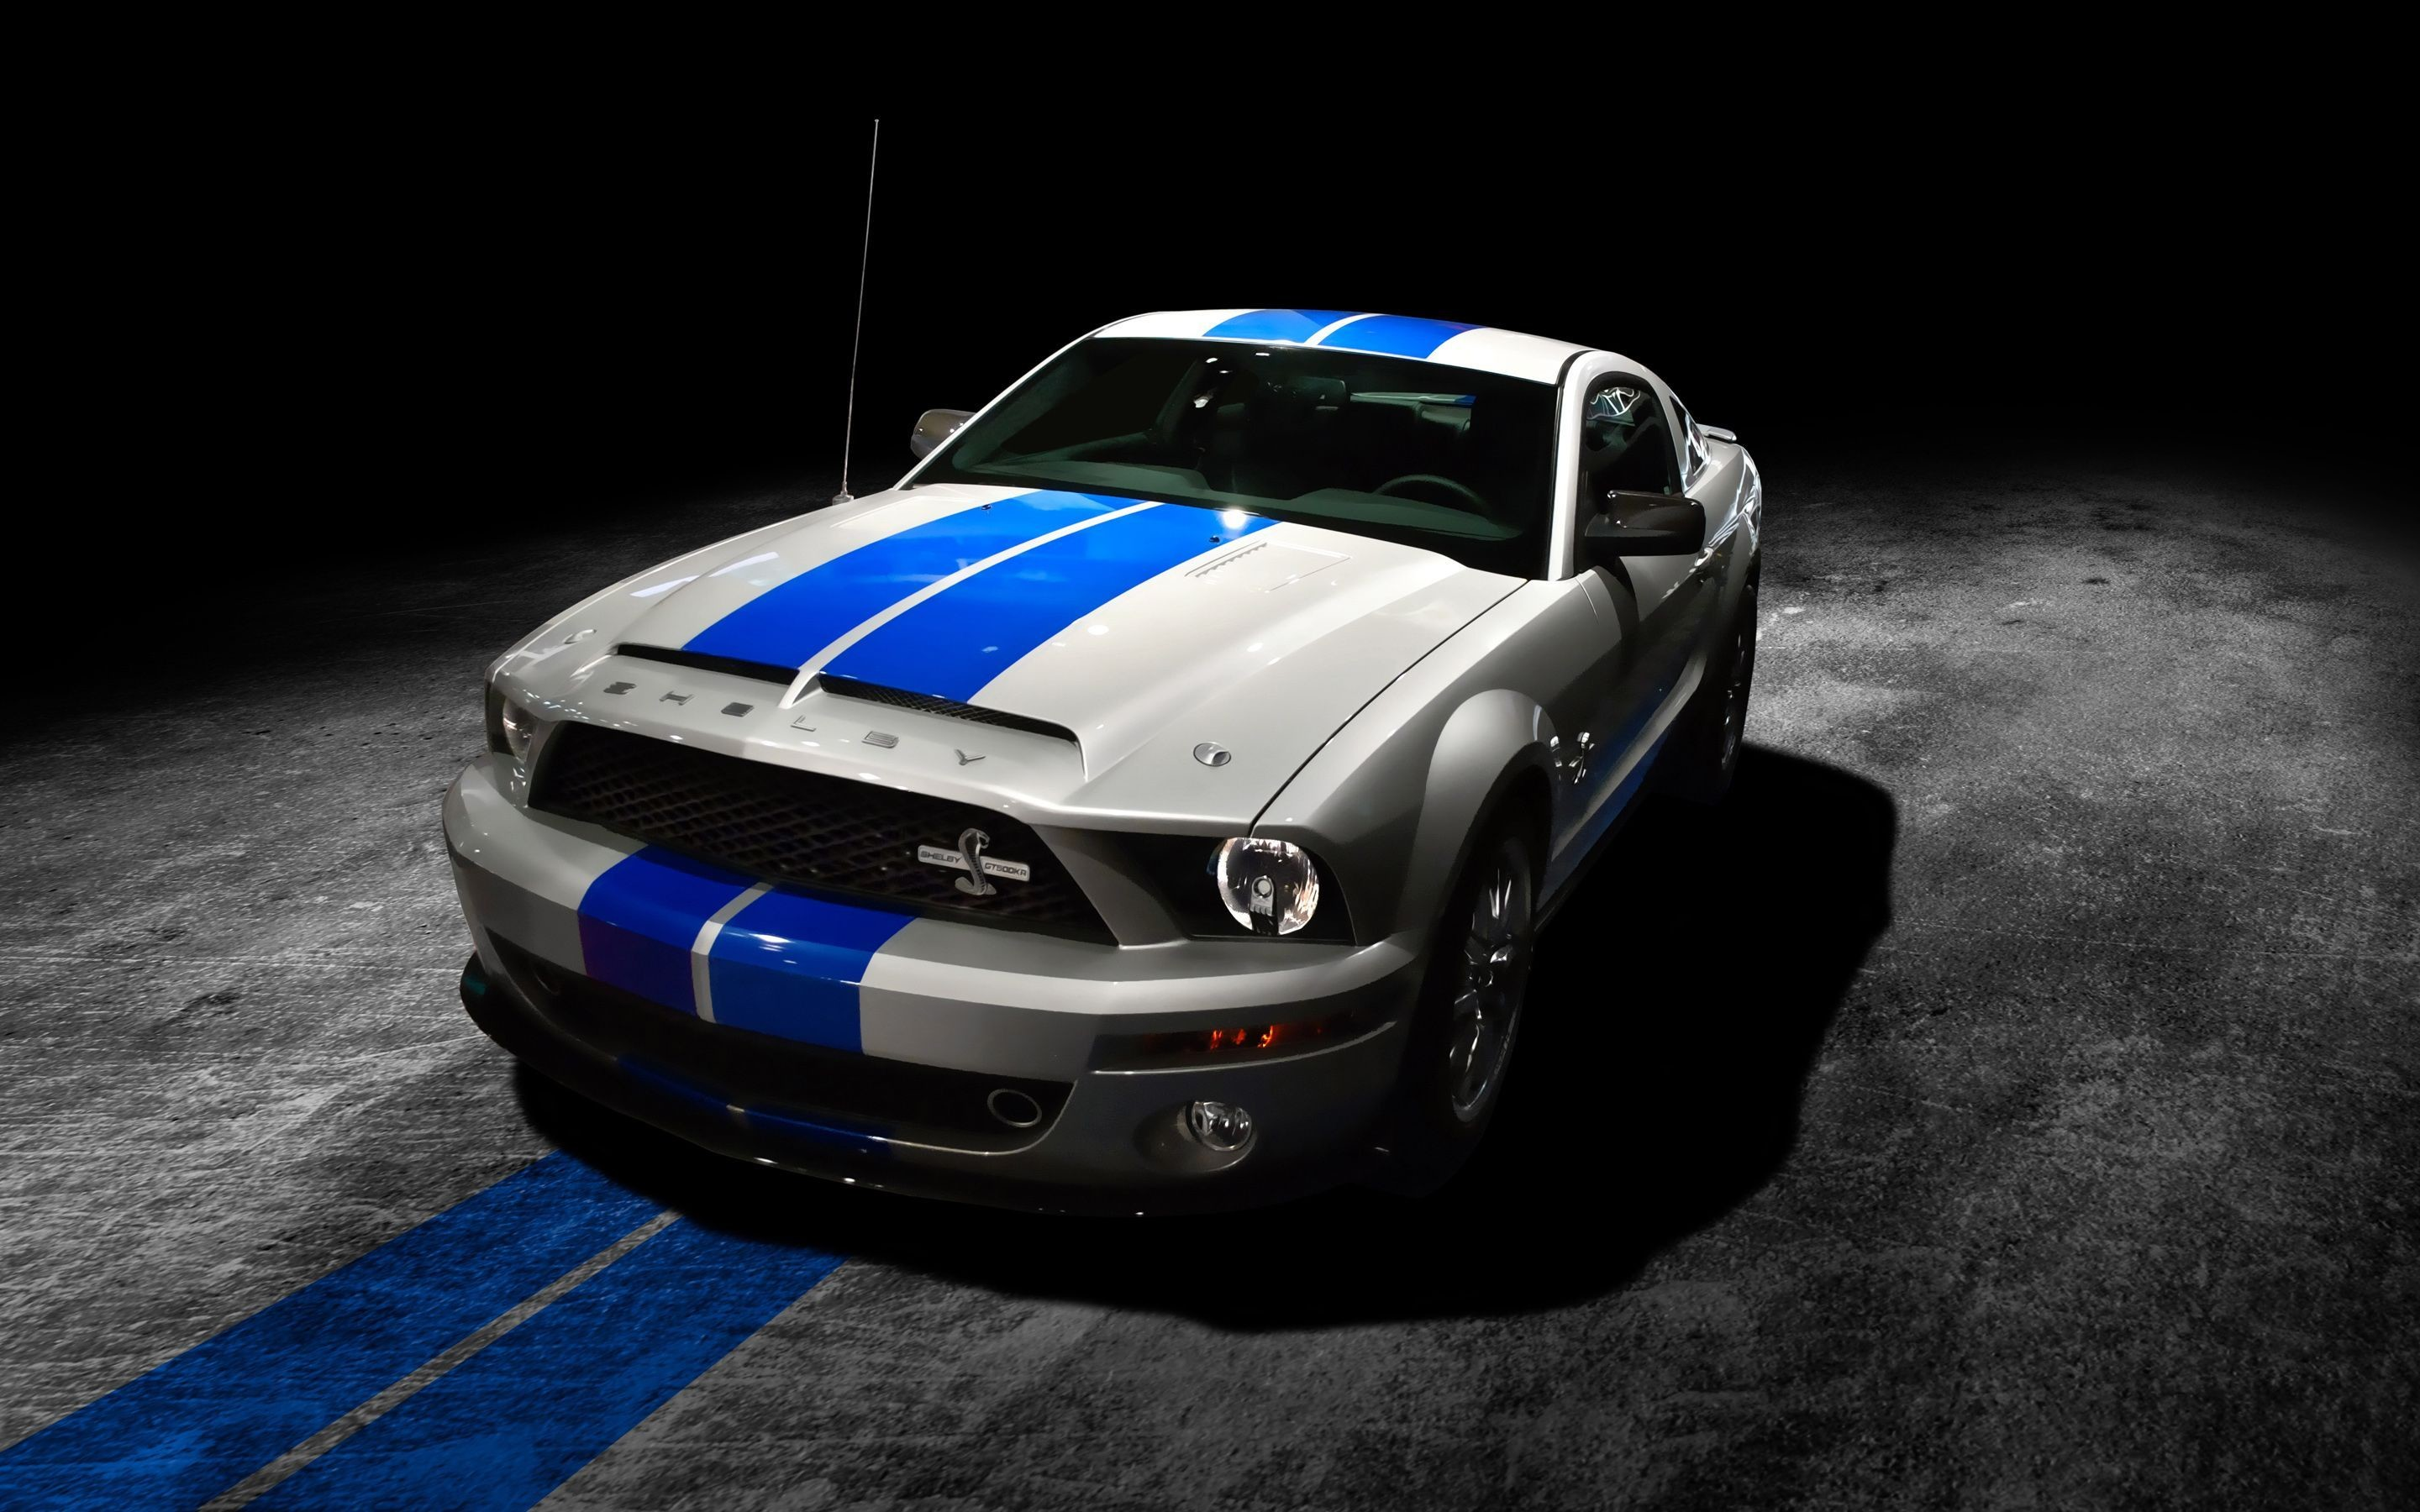 Wallpapers Tagged With MUSTANG